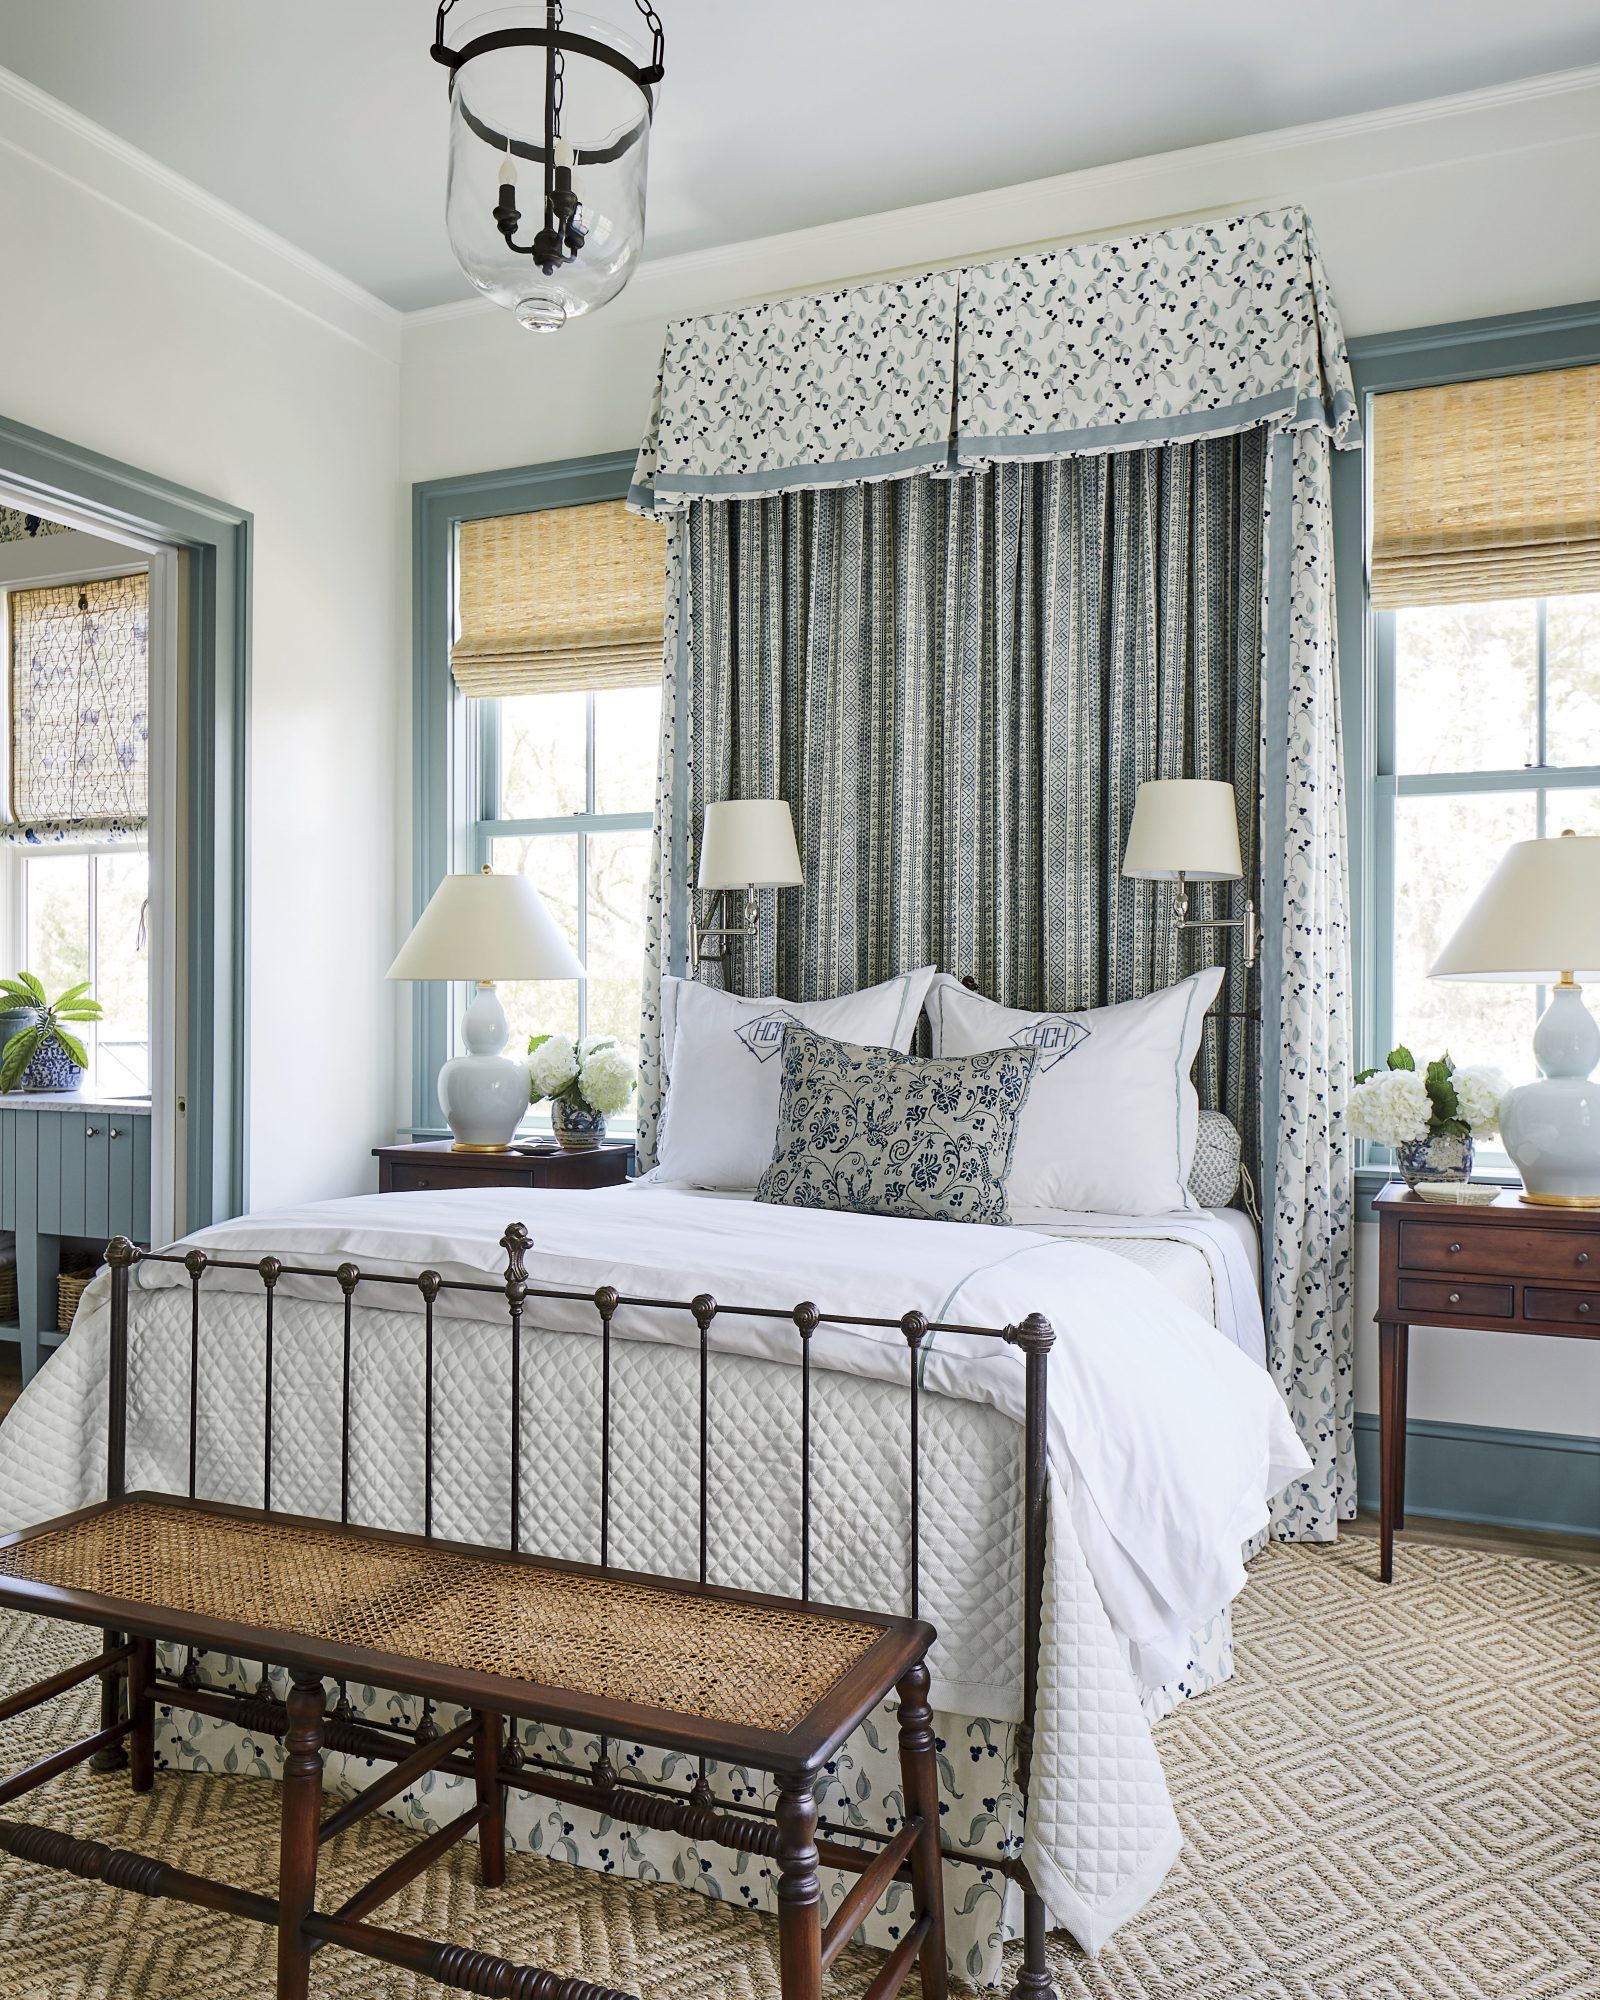 15 Calming Colors For Your Home Soothing And Relaxing Paint Colors Southern Living